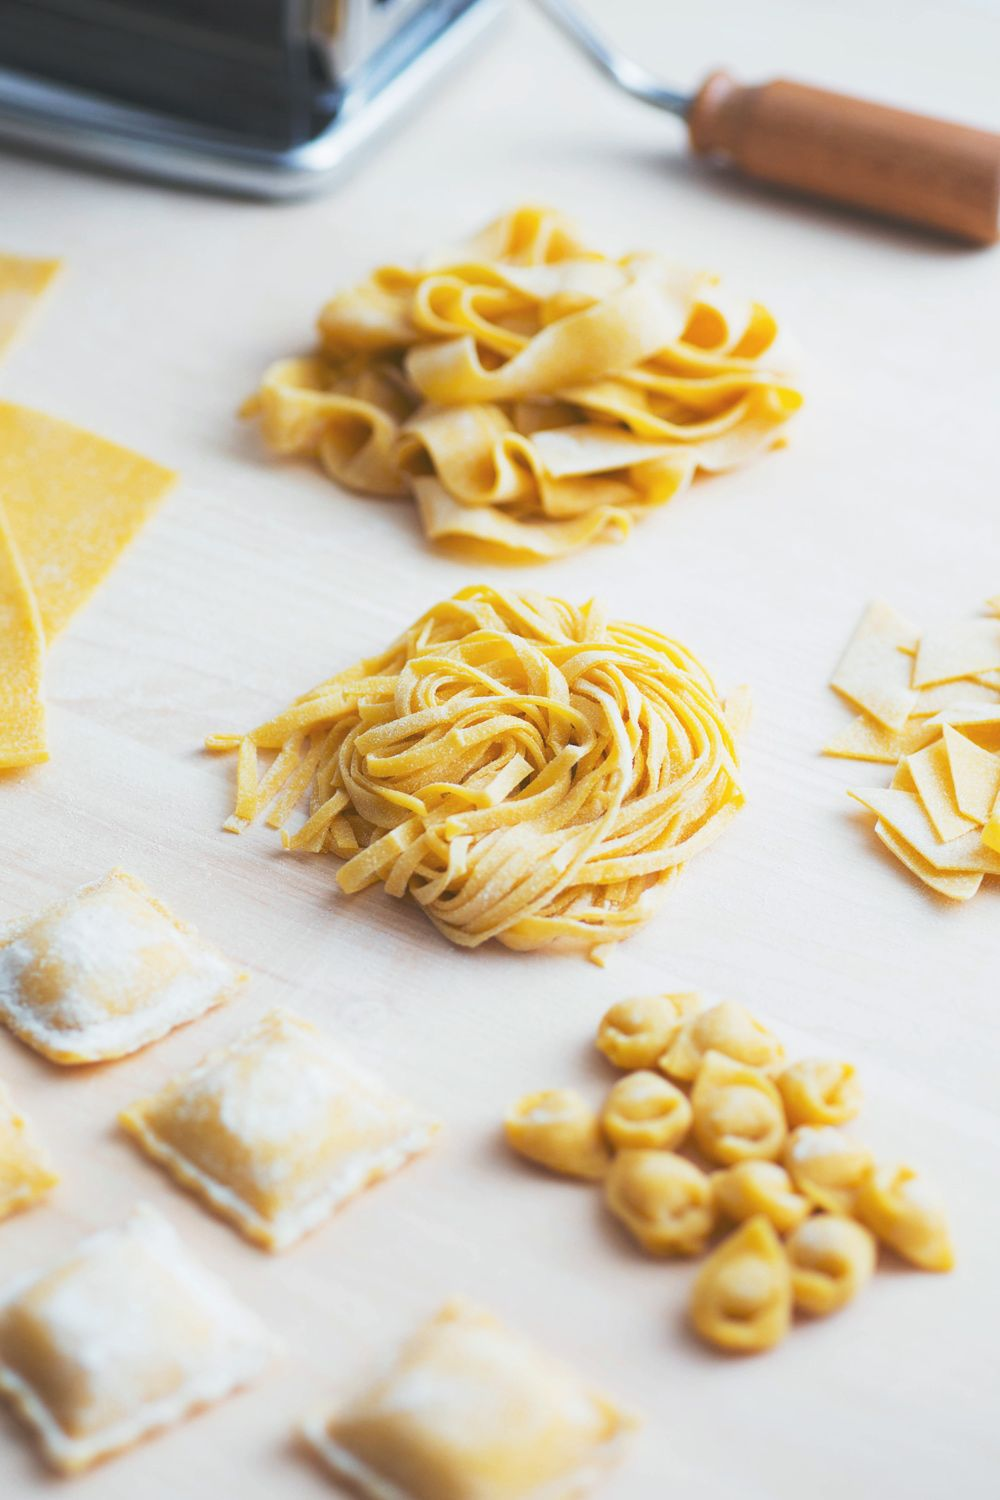 428800356ae1cb2a415bbb4dc253d1b8 - Ricette Pasta All Uovo